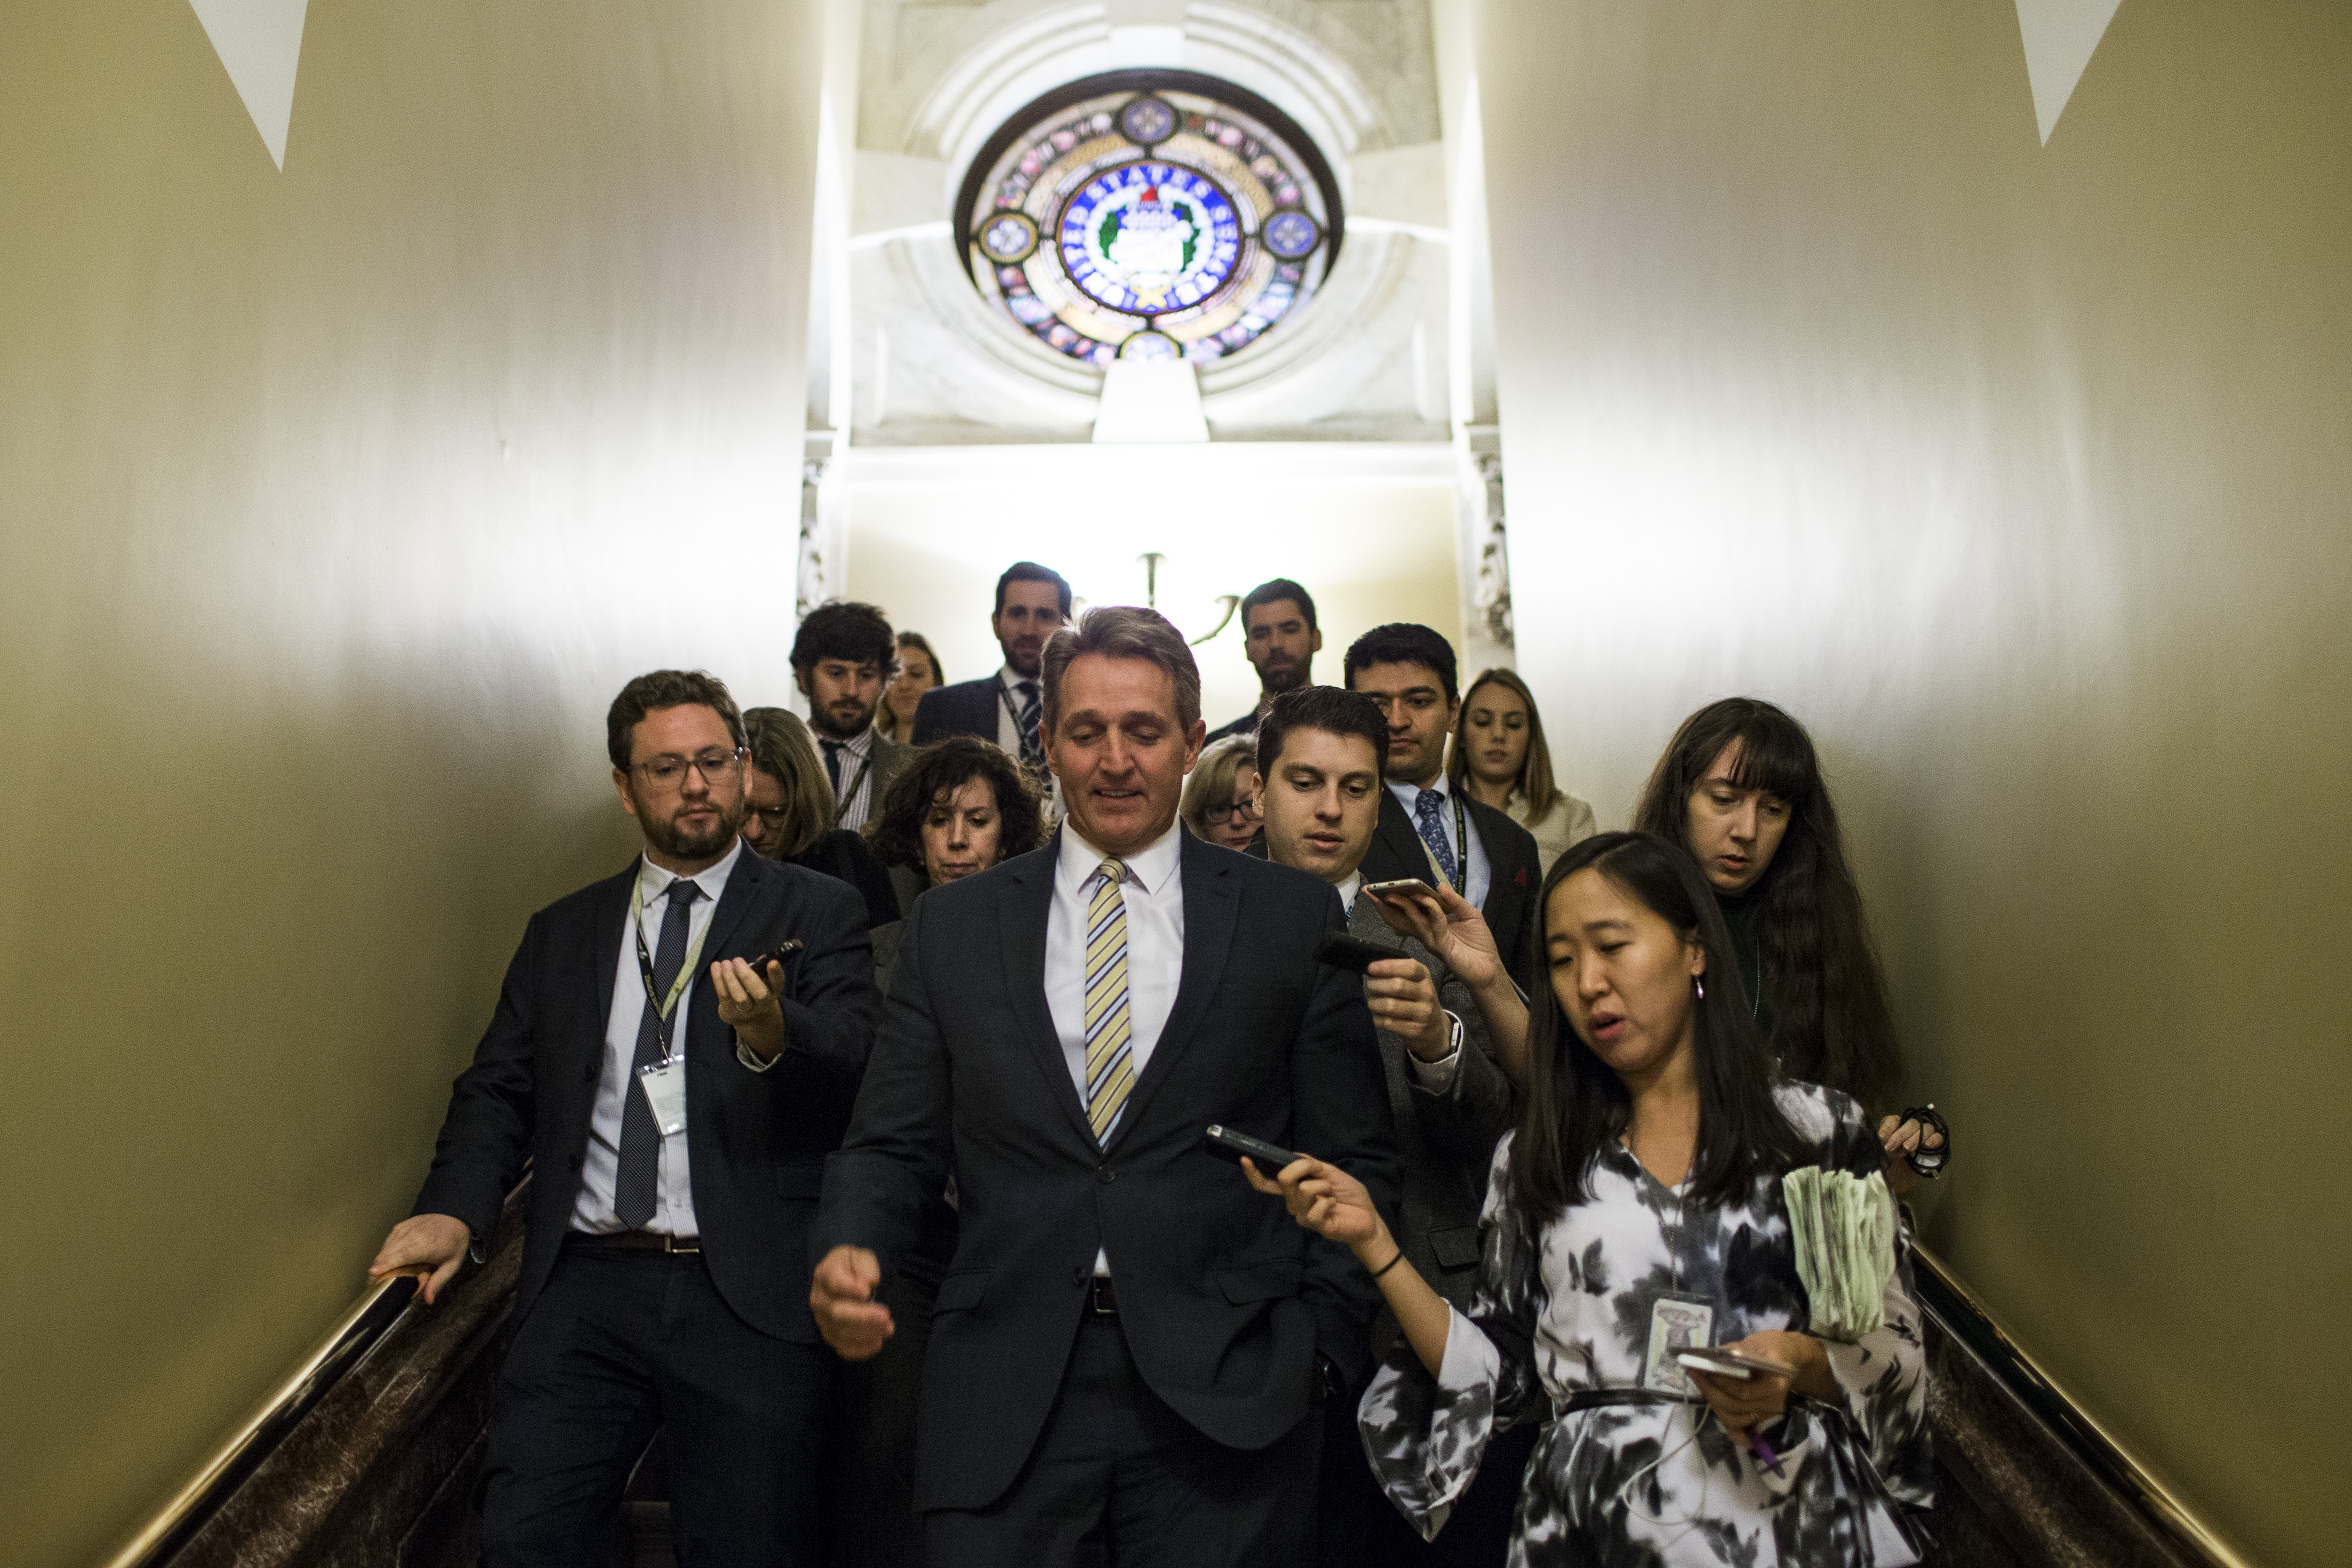 Senator Jeff Flake (R-AZ) speaks to reporters as he leaves a meeting with Senate Republicans on Capitol Hill November 29, 2017 in Washington, DC.